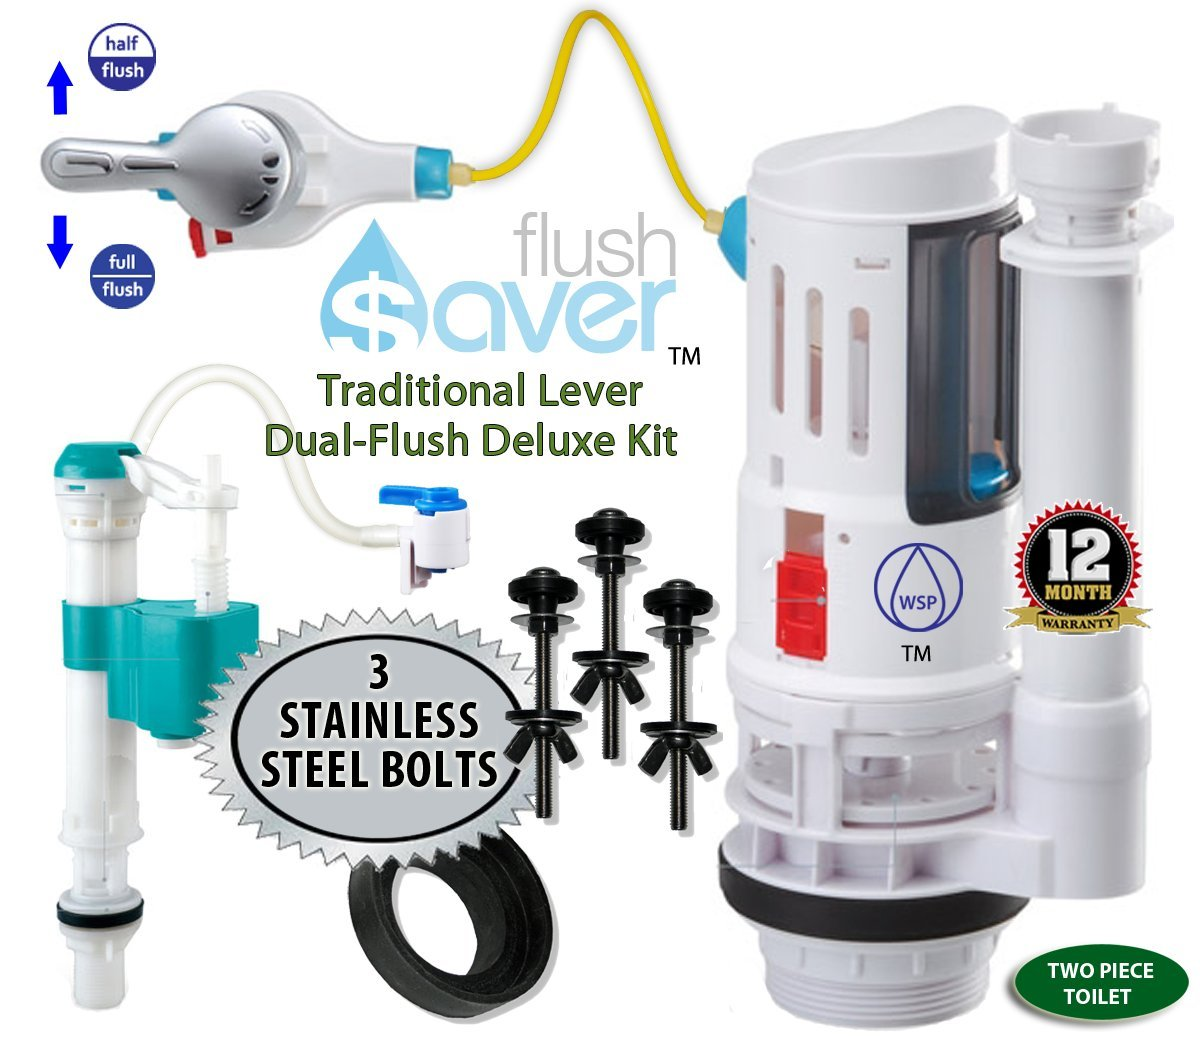 FlushSaver STANDARD FLUSH HANDLE Dual-Flush Deluxe DIY Conversion Kit - FITS STANDARD 2'' DRAIN TWO PIECE TOILETS. Converts standard toilets into efficient dual-flush systems. STAINLESS STEEL 3 BOLTS UPGRADE